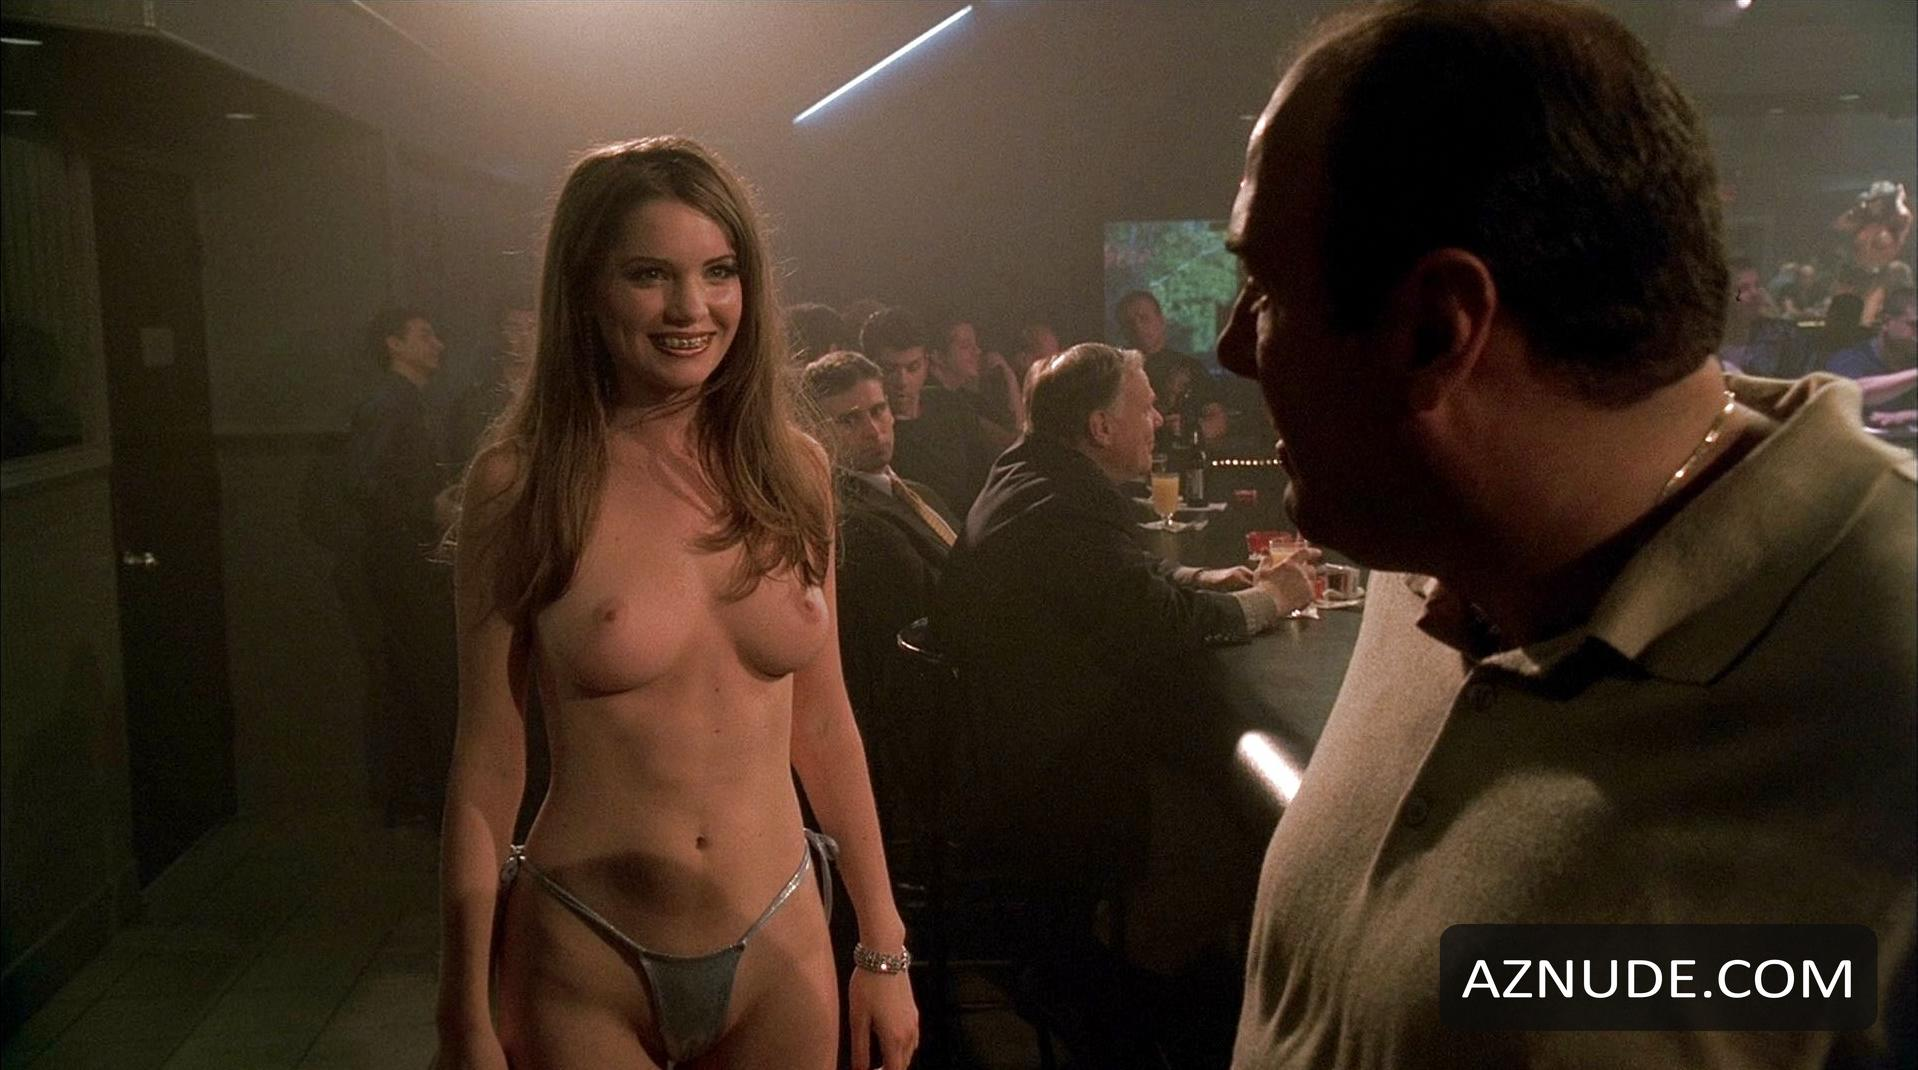 Ariel kiley in sopranos 10